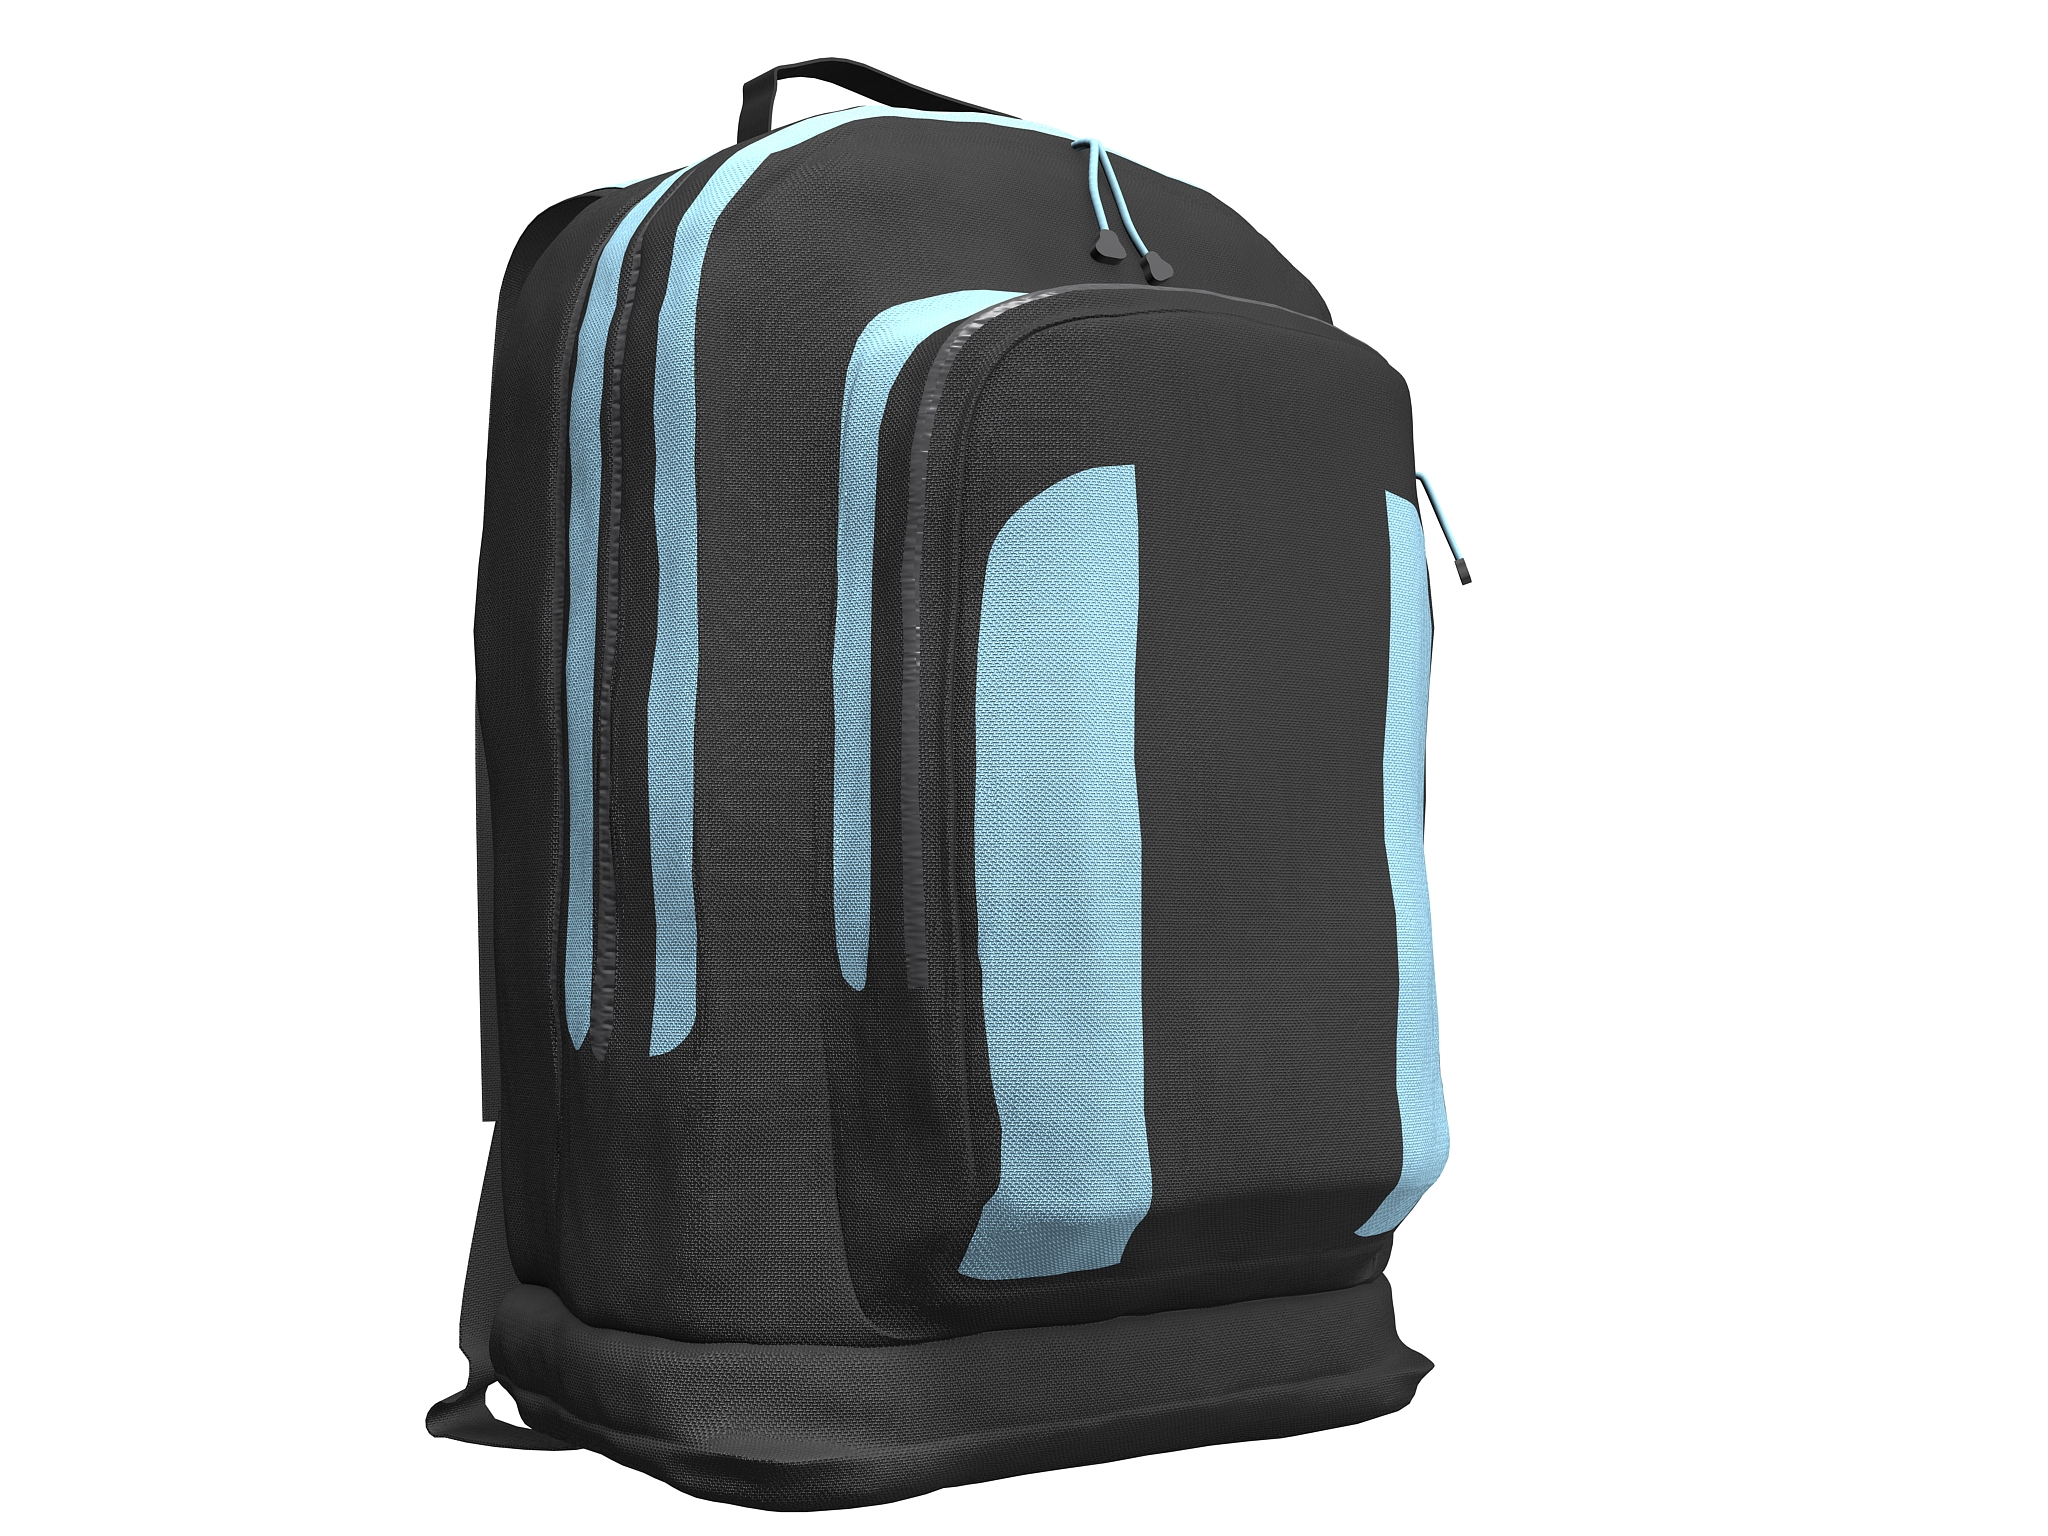 Backpacks Capricho: Models, Where to Buy